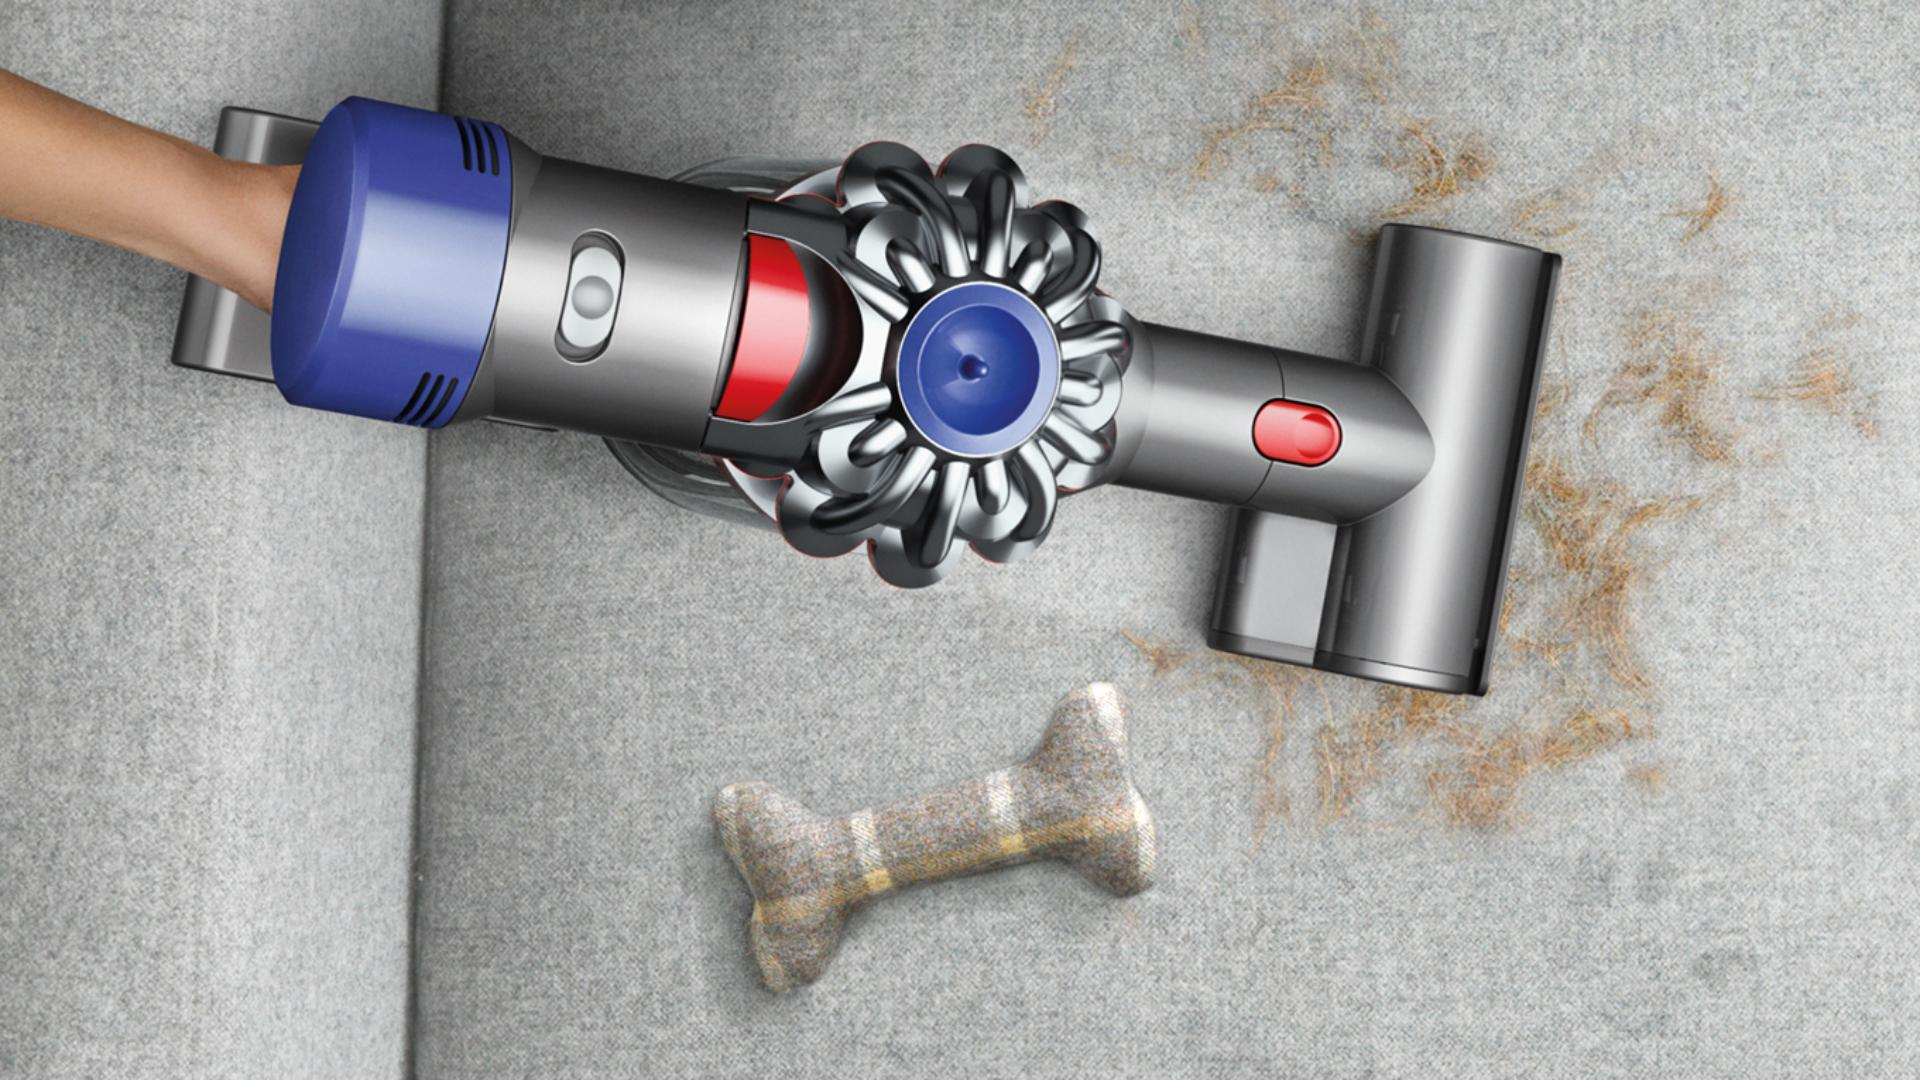 Dyson V7 handheld vacuum cleaner cleaning sofa after pet